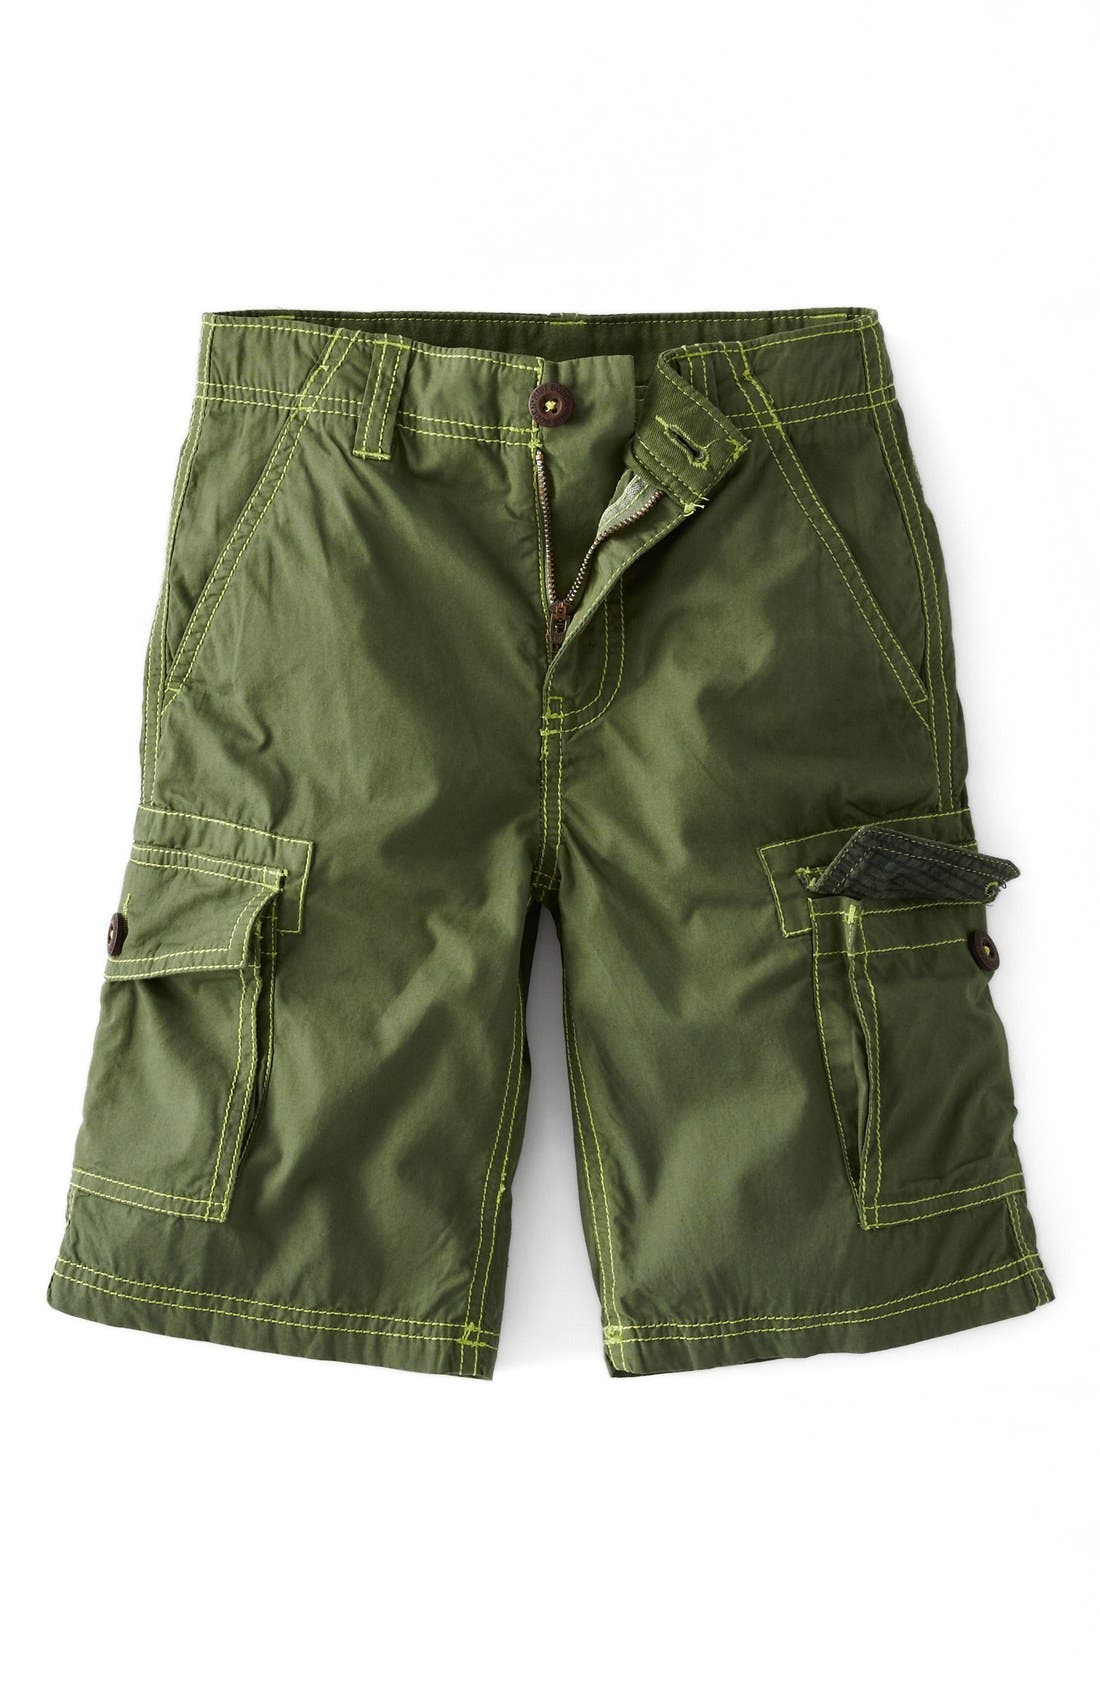 Alternate Image 1 Selected - Mini Boden 'Summer' Cargo Shorts (Toddlers, Little Boys & Big Boys)